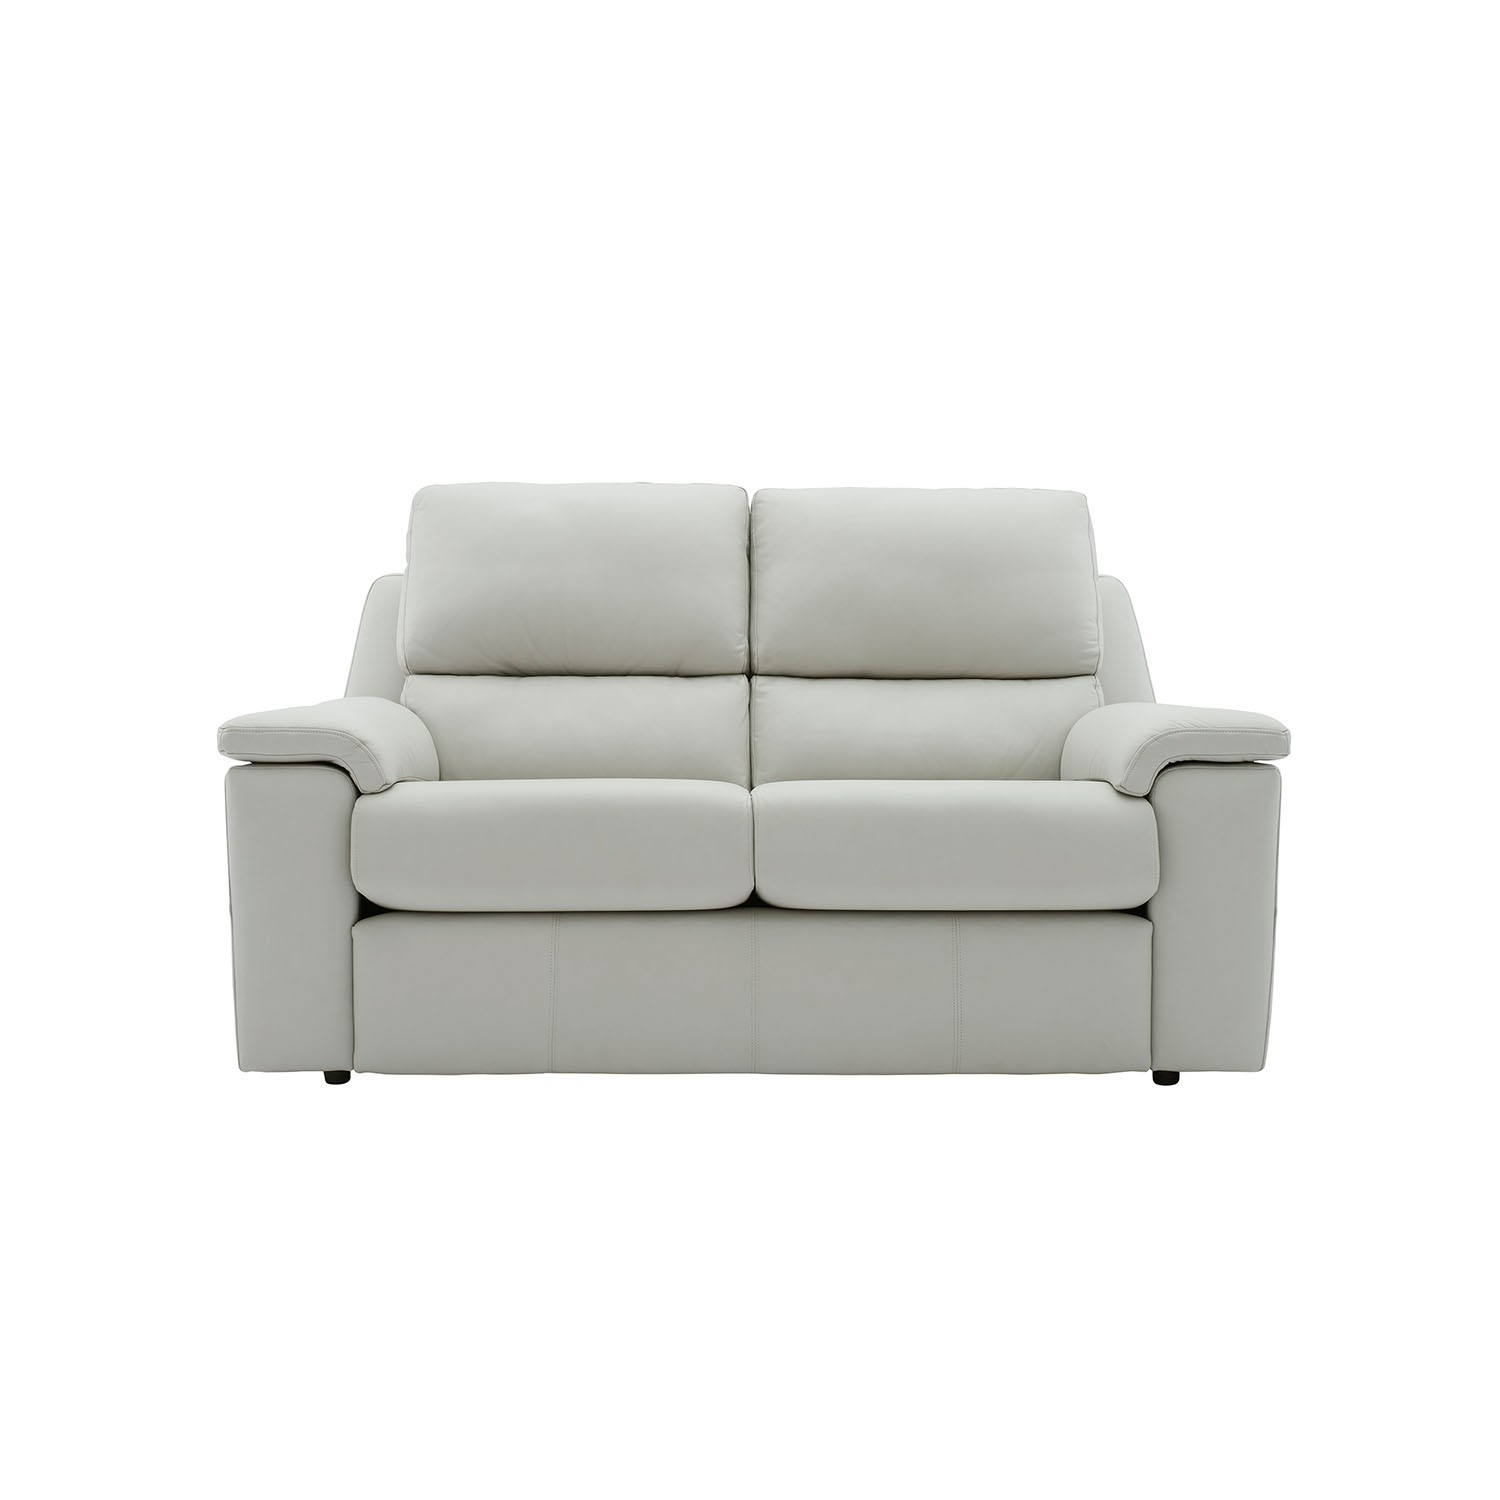 G Plan Taylor Two Seater Power Recliner Leather Sofa